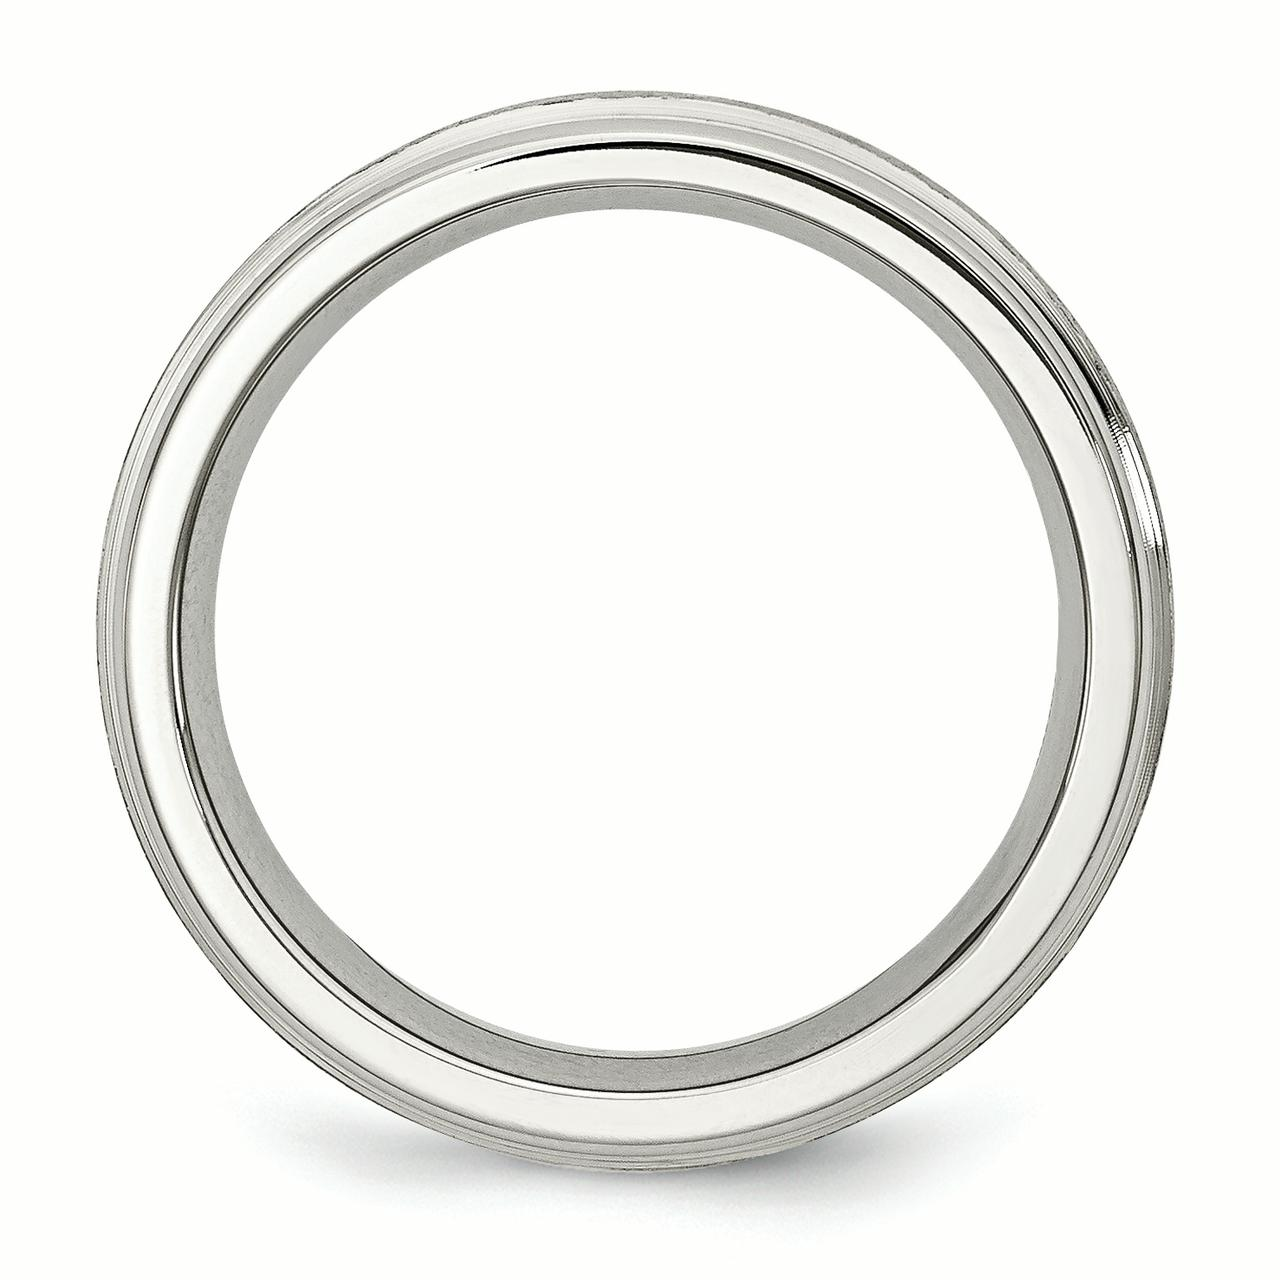 Stainless Steel Grooved Edge 6mm Wedding Ring Band Size 11.00 Fashion Jewelry Gifts For Women For Her - image 2 de 5